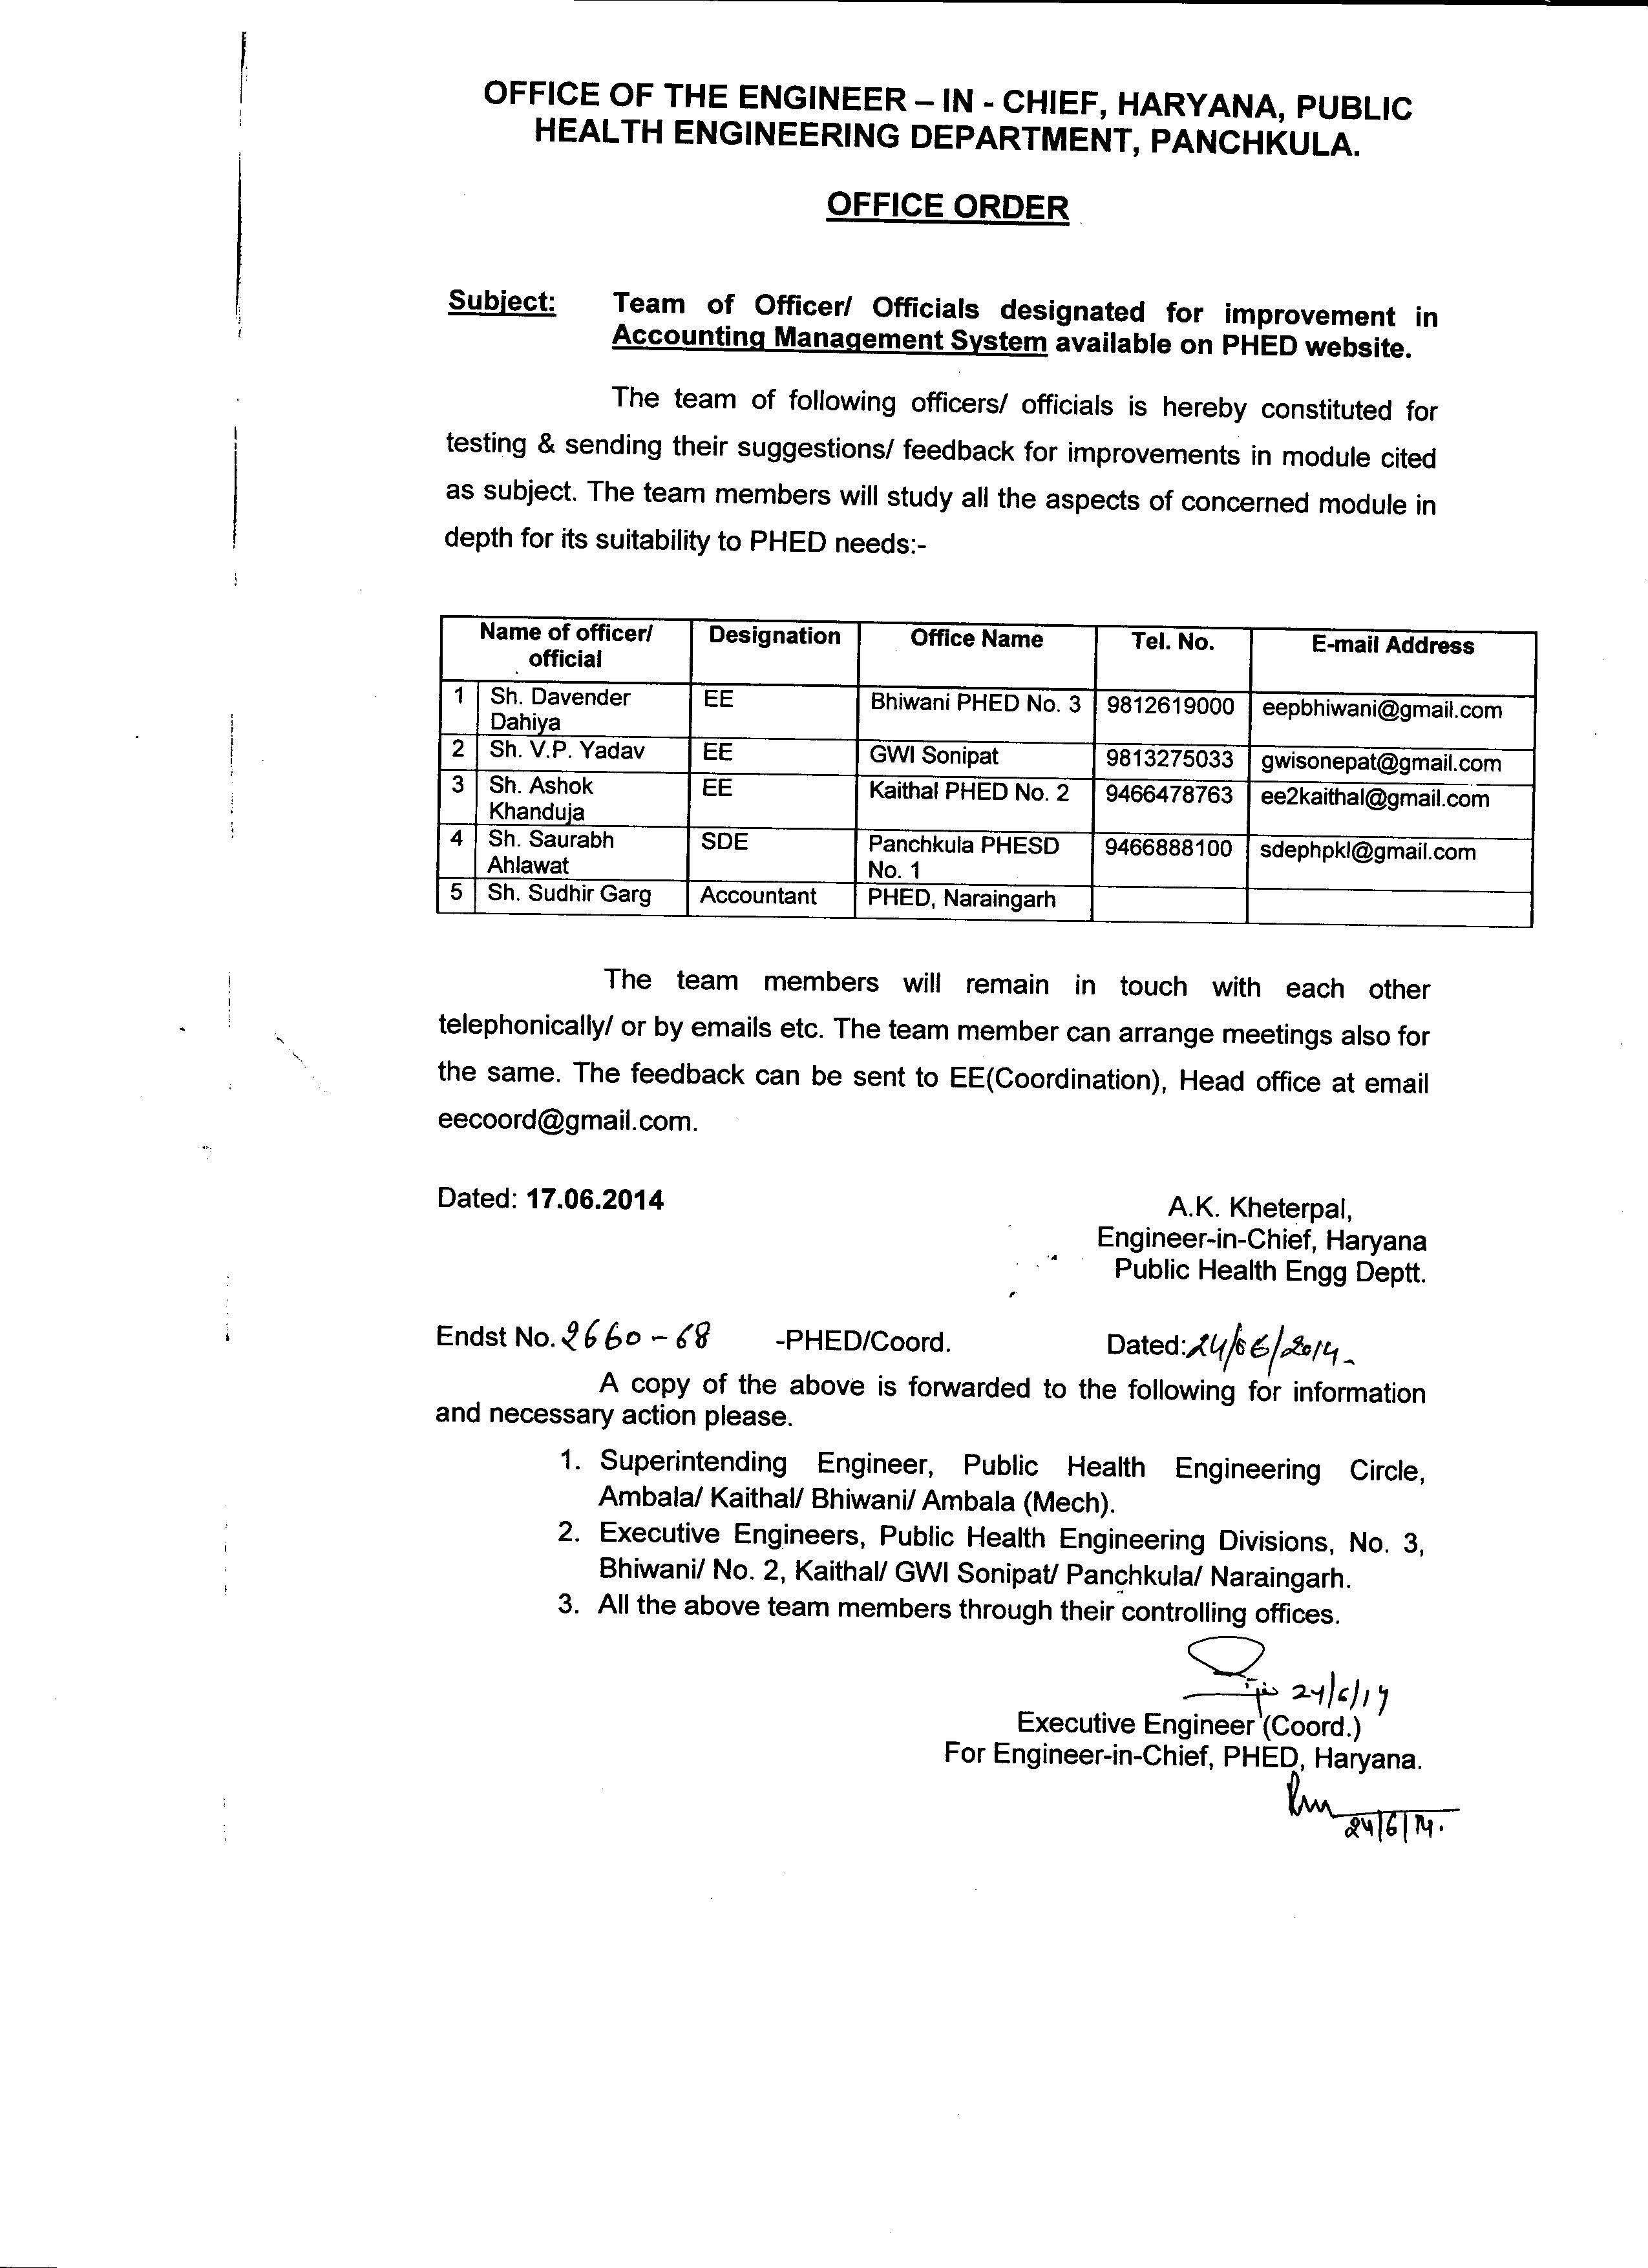 Public Health Engineering Department Haryana Prophet Wiring Diagram Team Of Officer Officials Designated For Improvement In Accounting Management System Available On Phed Website